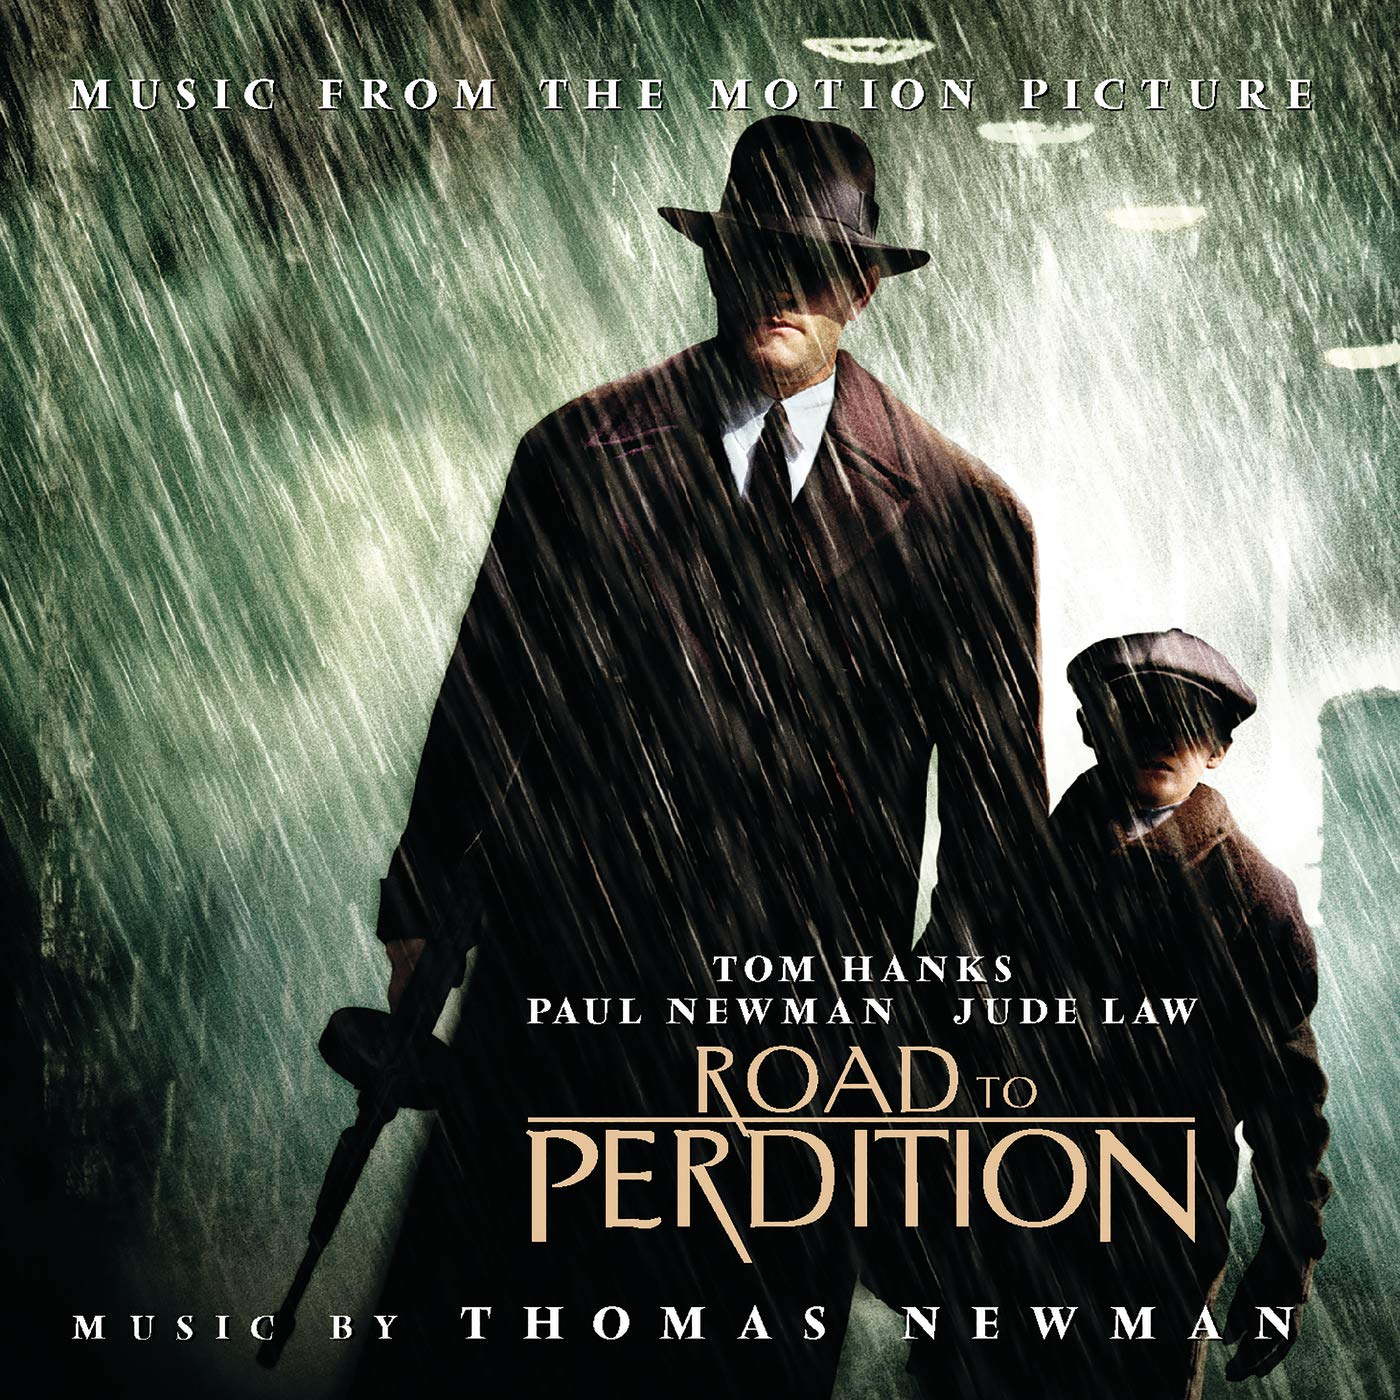 bande originale soundrack ost score sentiers road perdition disney fox